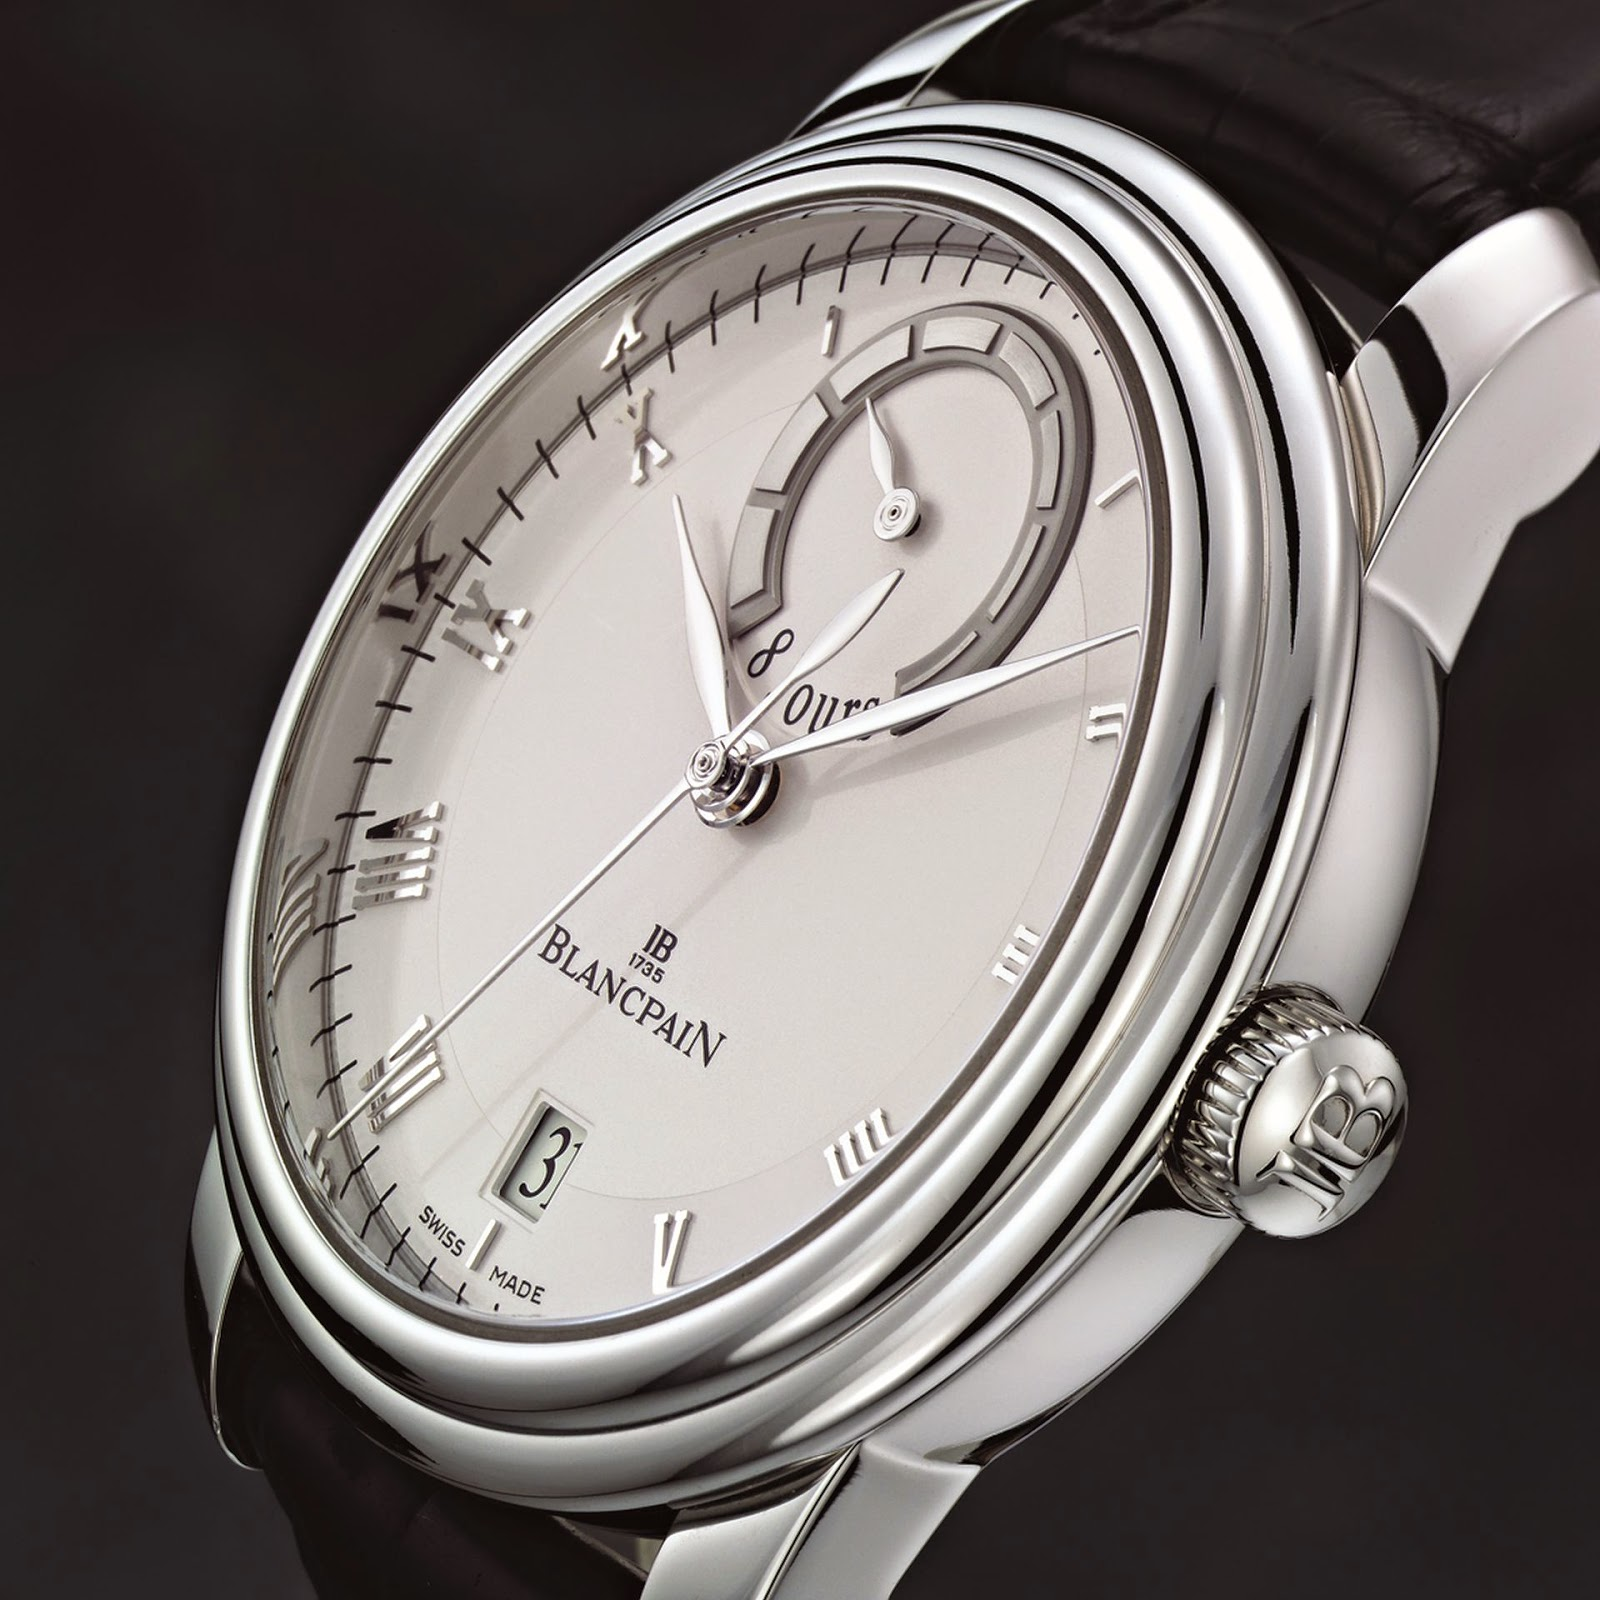 "BLANCPAIN - Le Brassus, ""8 Jours"" (8 Days) Platinum watch 8 days power reserve"